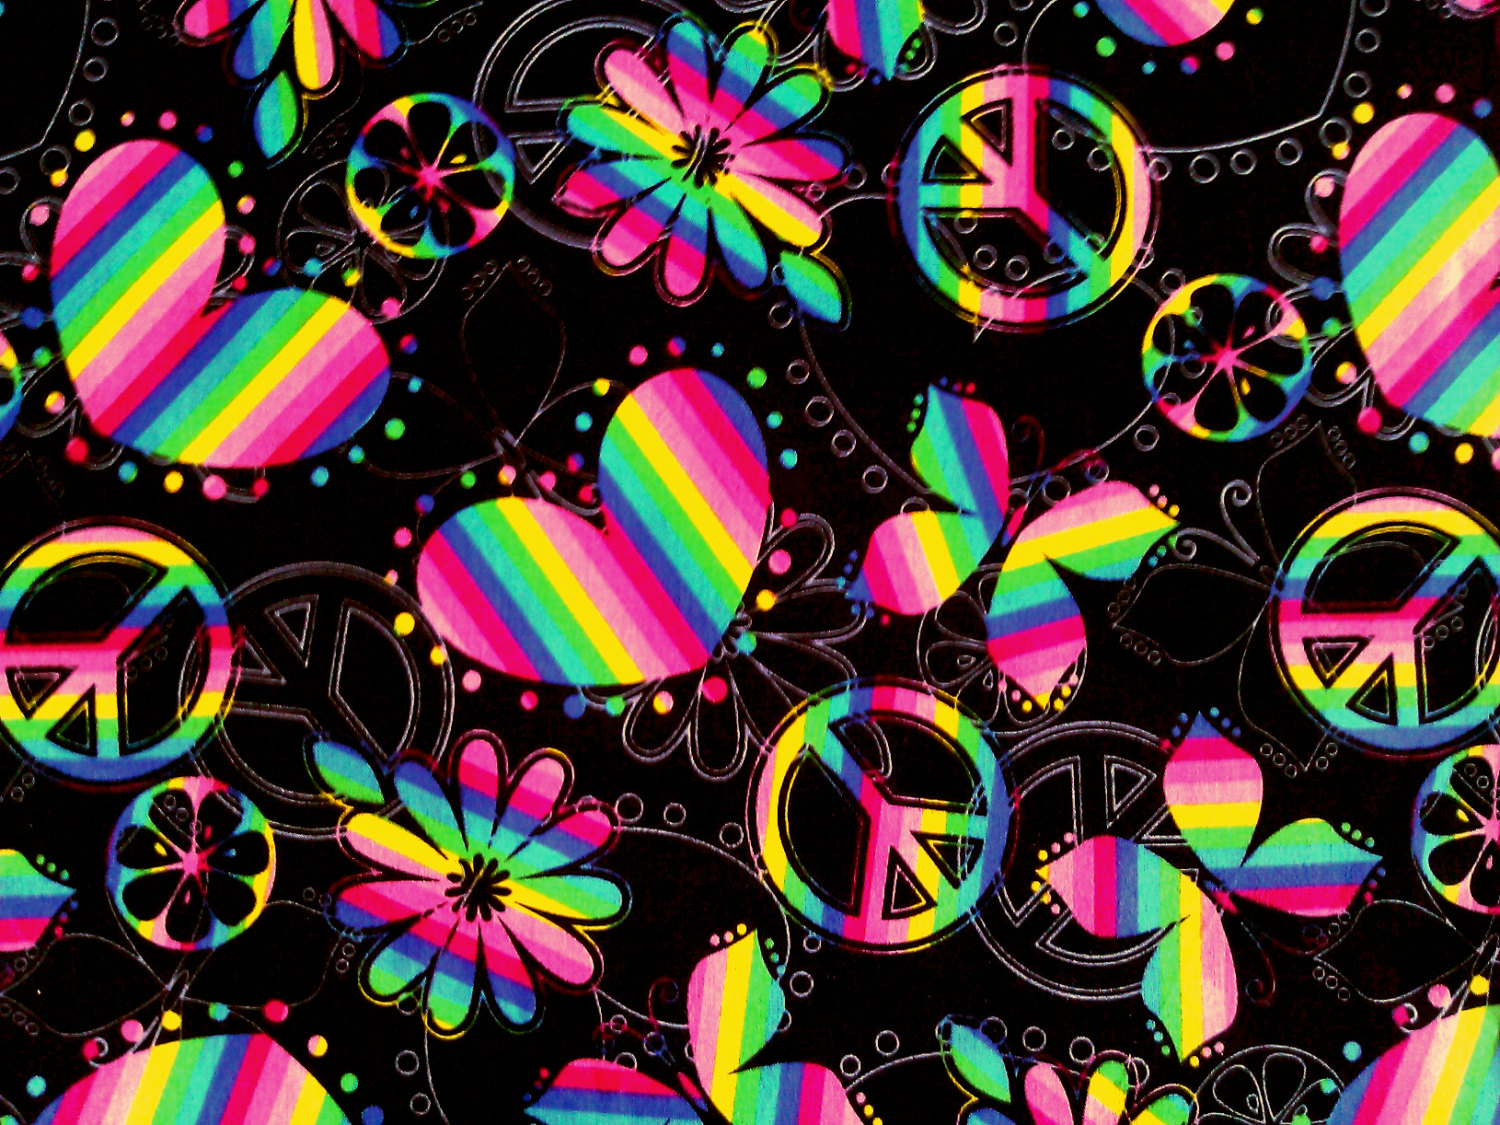 Zebra Peace Sign Backgrounds Neon peace sig 1500x1125